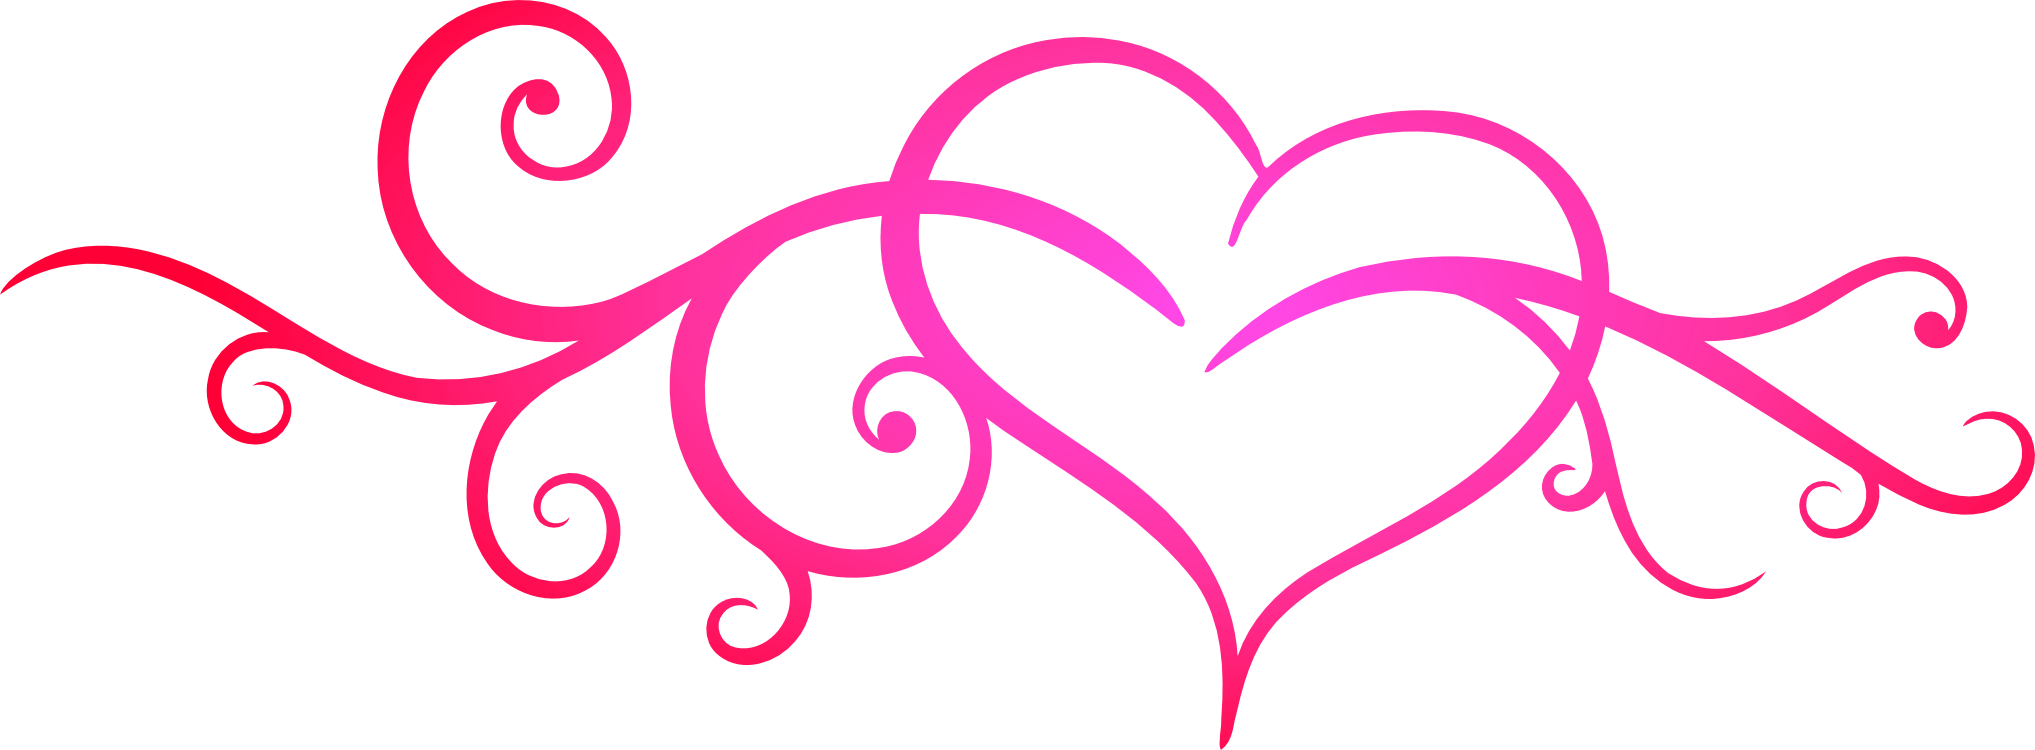 Divider clipart heart. Author bella andre audiobook